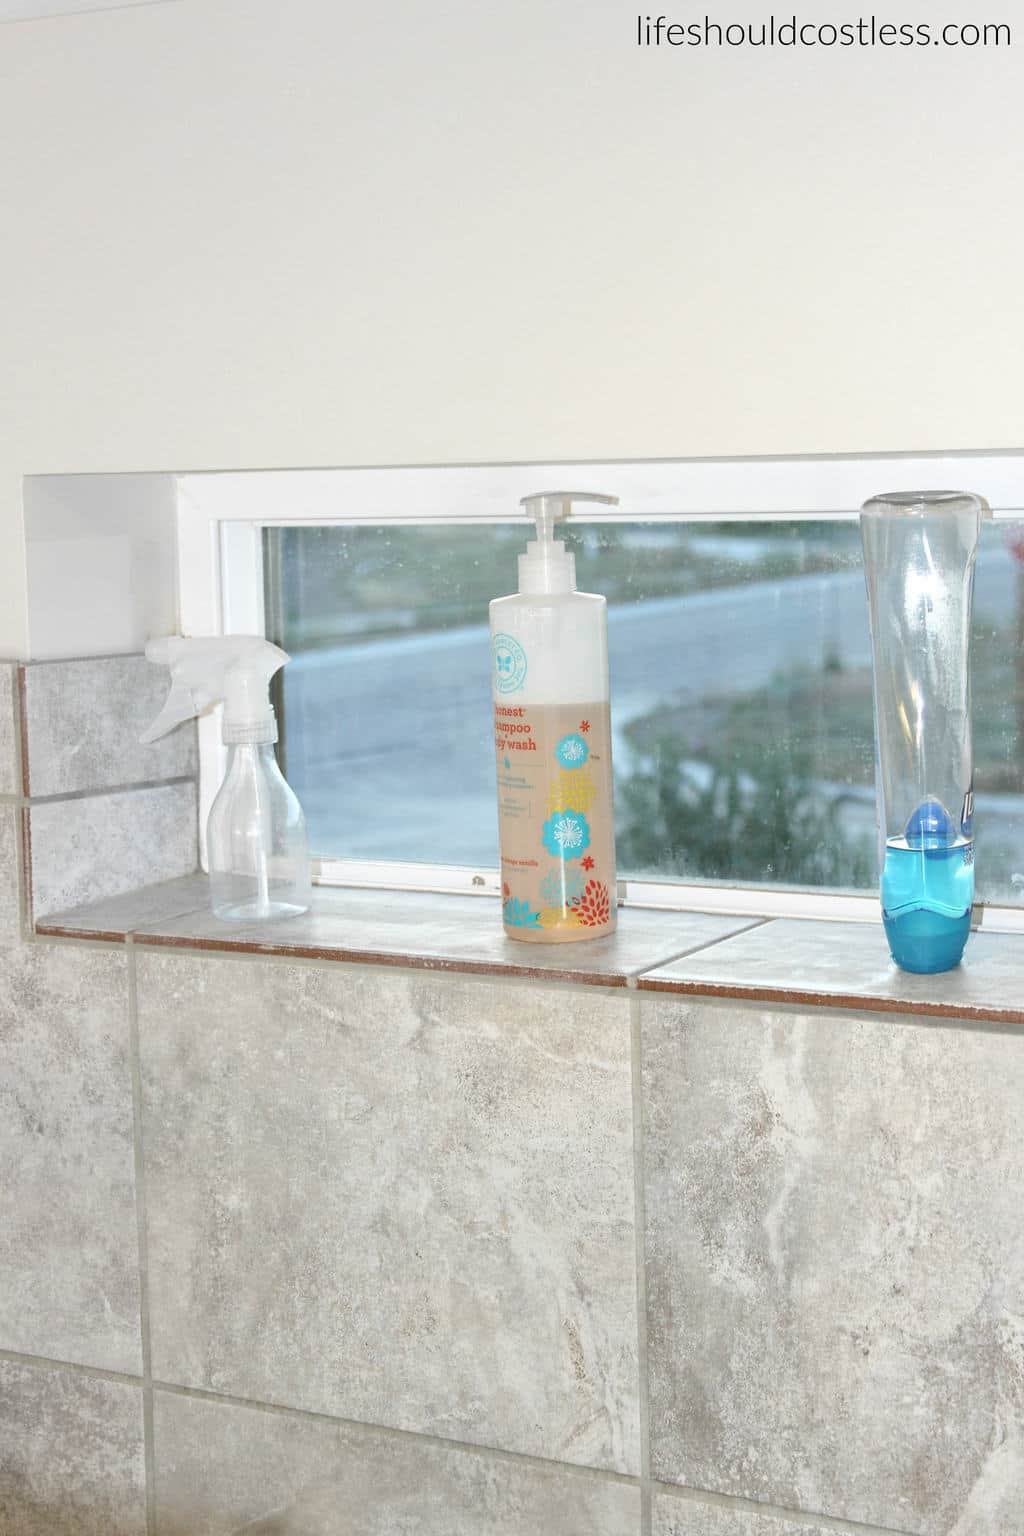 DIY Privacy Glass - Life Should Cost Less